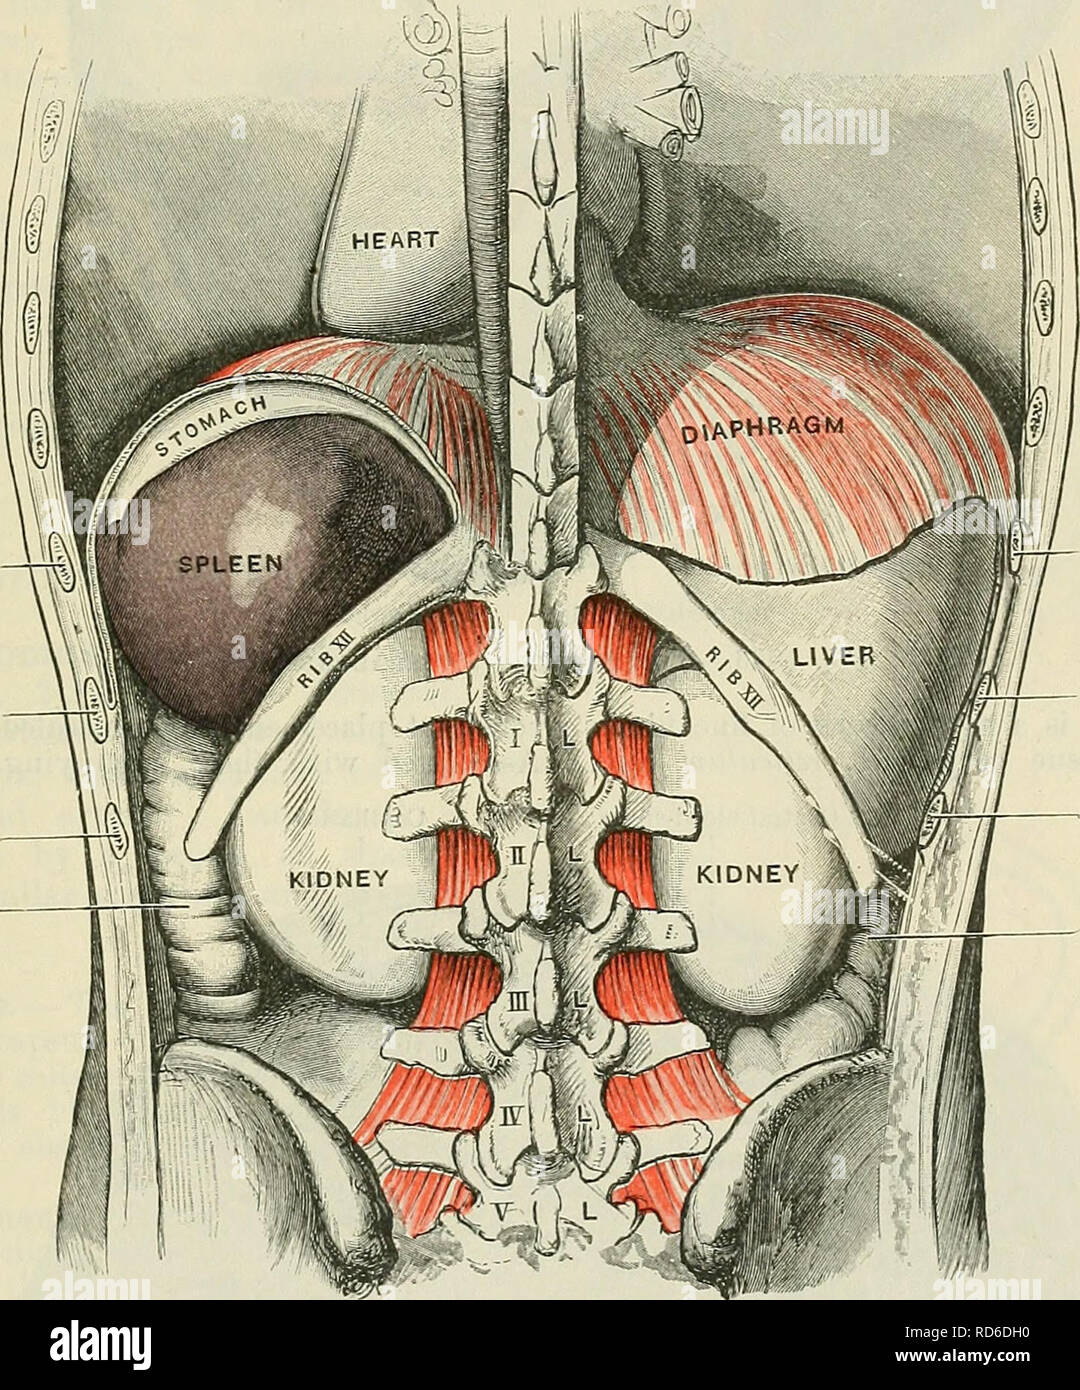 . Cunningham's Text-book of anatomy. Anatomy. THE SPLEEK 1353 gastric, and renal surfaces; anterior, at the junction of the diaphragmatic, gastric, and basal surfaces; posterior, at the junction of the diaphragmatic, renal, and basal surfaces; intermediate, at the junction of the renal, gastric, and basal surfaces. In a spleen of orange-segment form there are but two angles, a superior and an anterior. The superior is bounded in the same way as in the tetrahedral form; the anterior, by the dia- phragmatic, gastric, and renal surfaces. In all spleens, but most commonly in those of oblique, irre Stock Photo